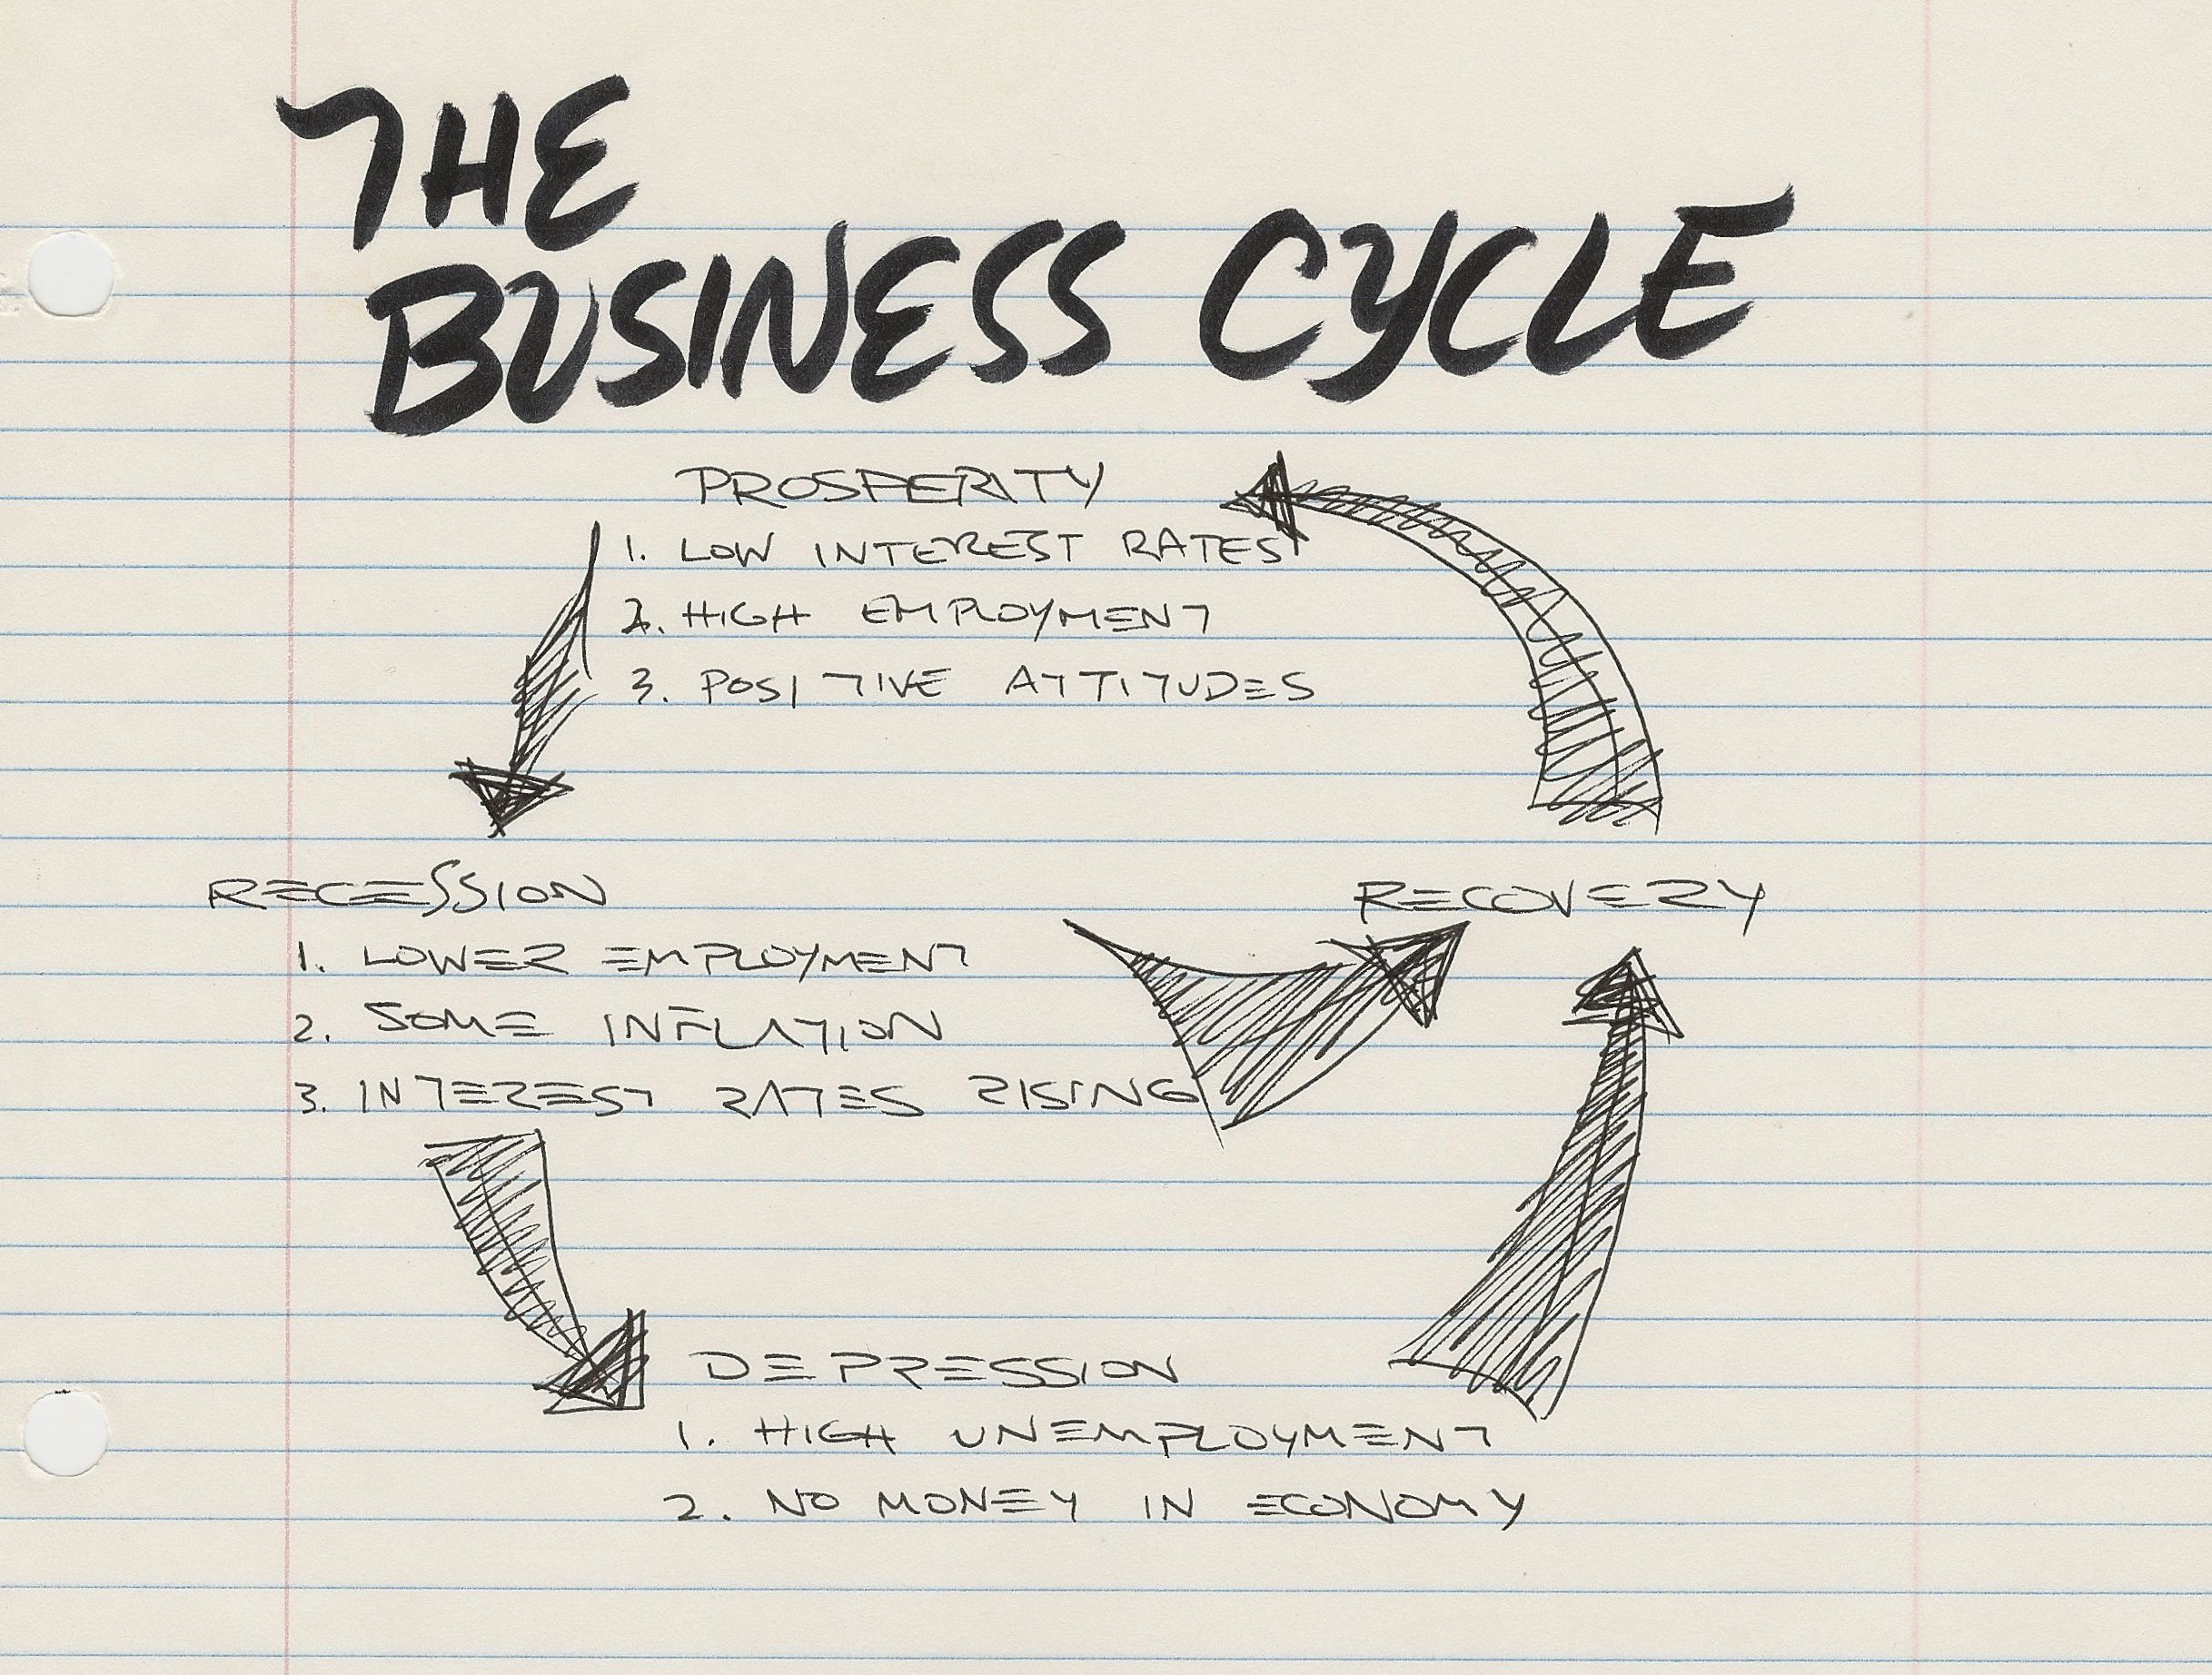 hayeks contribution to the business cycle essay Mark antony mark antony the temper of mark antony from if you desire to get a full-of-the-moon essay hayeks contribution to the business cycle.